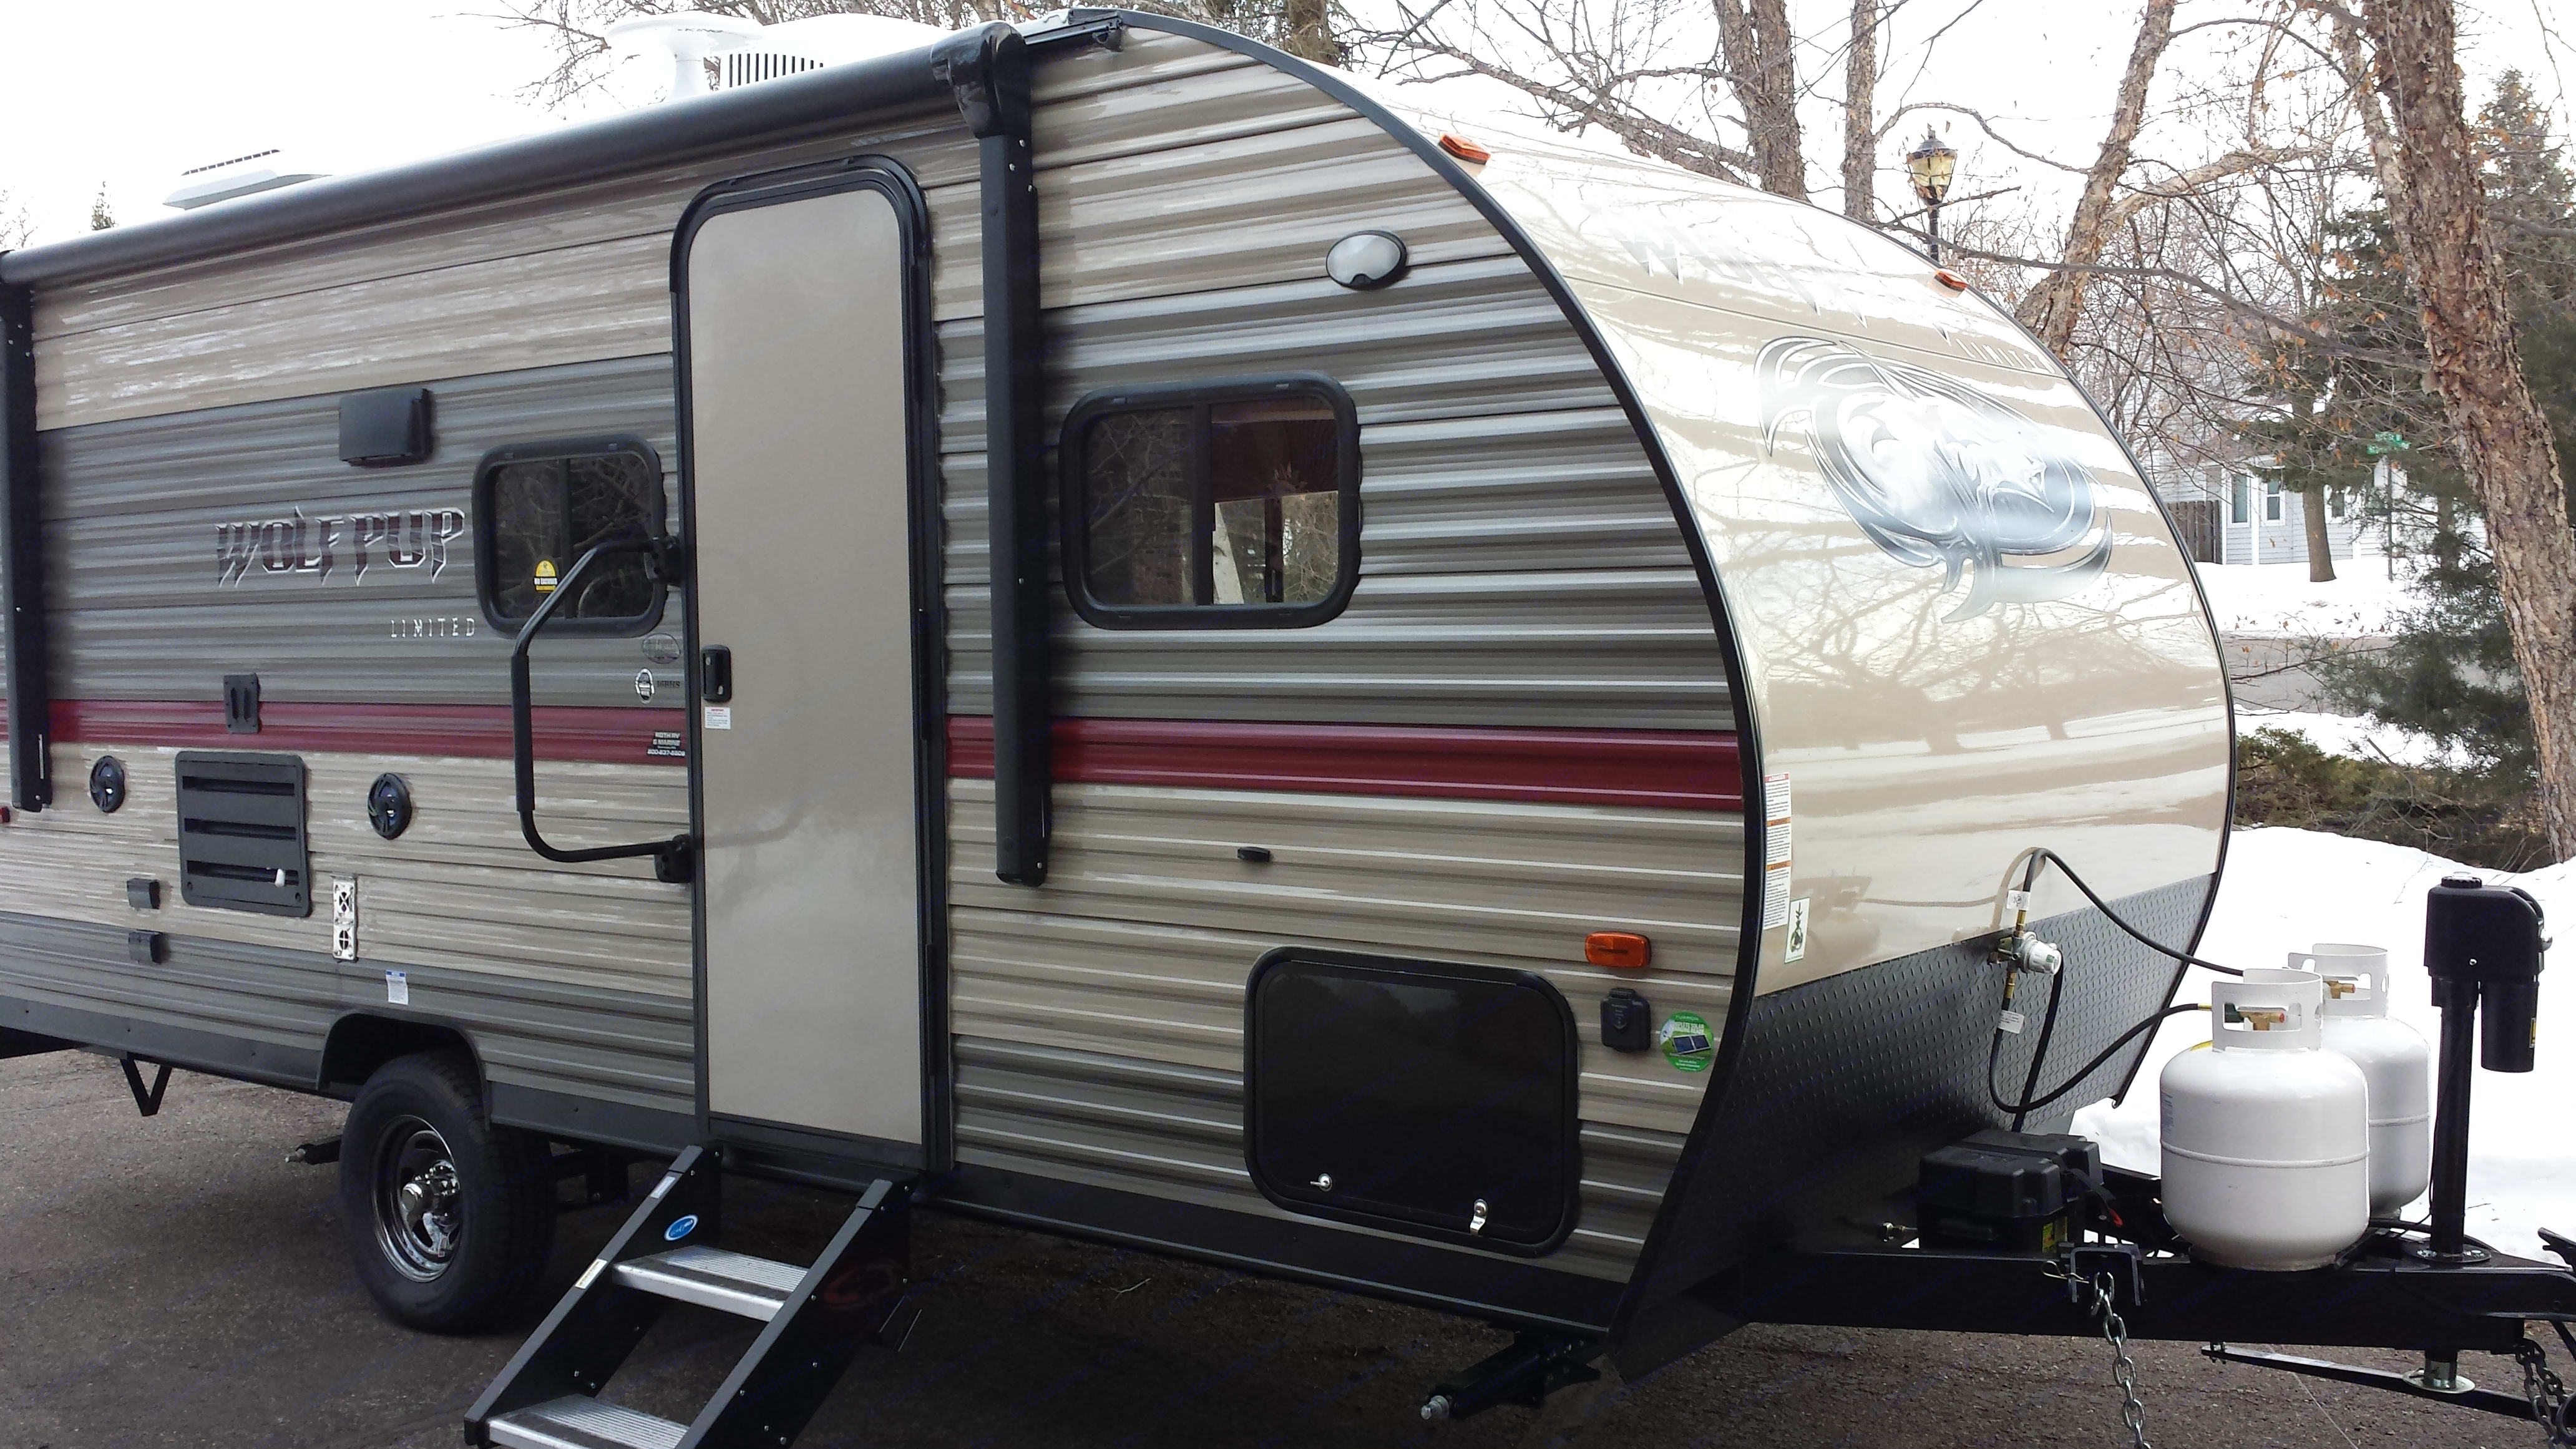 New 2018- Cherokee WolfPup LTDDeluxe-Queen & bunks, X large fridge and freezer, basic kitchen stuff for food prep, dual propane, outside propane grill, power awning, electric jack, EZ swing up stairs, swing out entry assist handle...many more extras inside and out to make your camping trip Xtra fun!. Forest River Cherokee Wolf Pup 2018